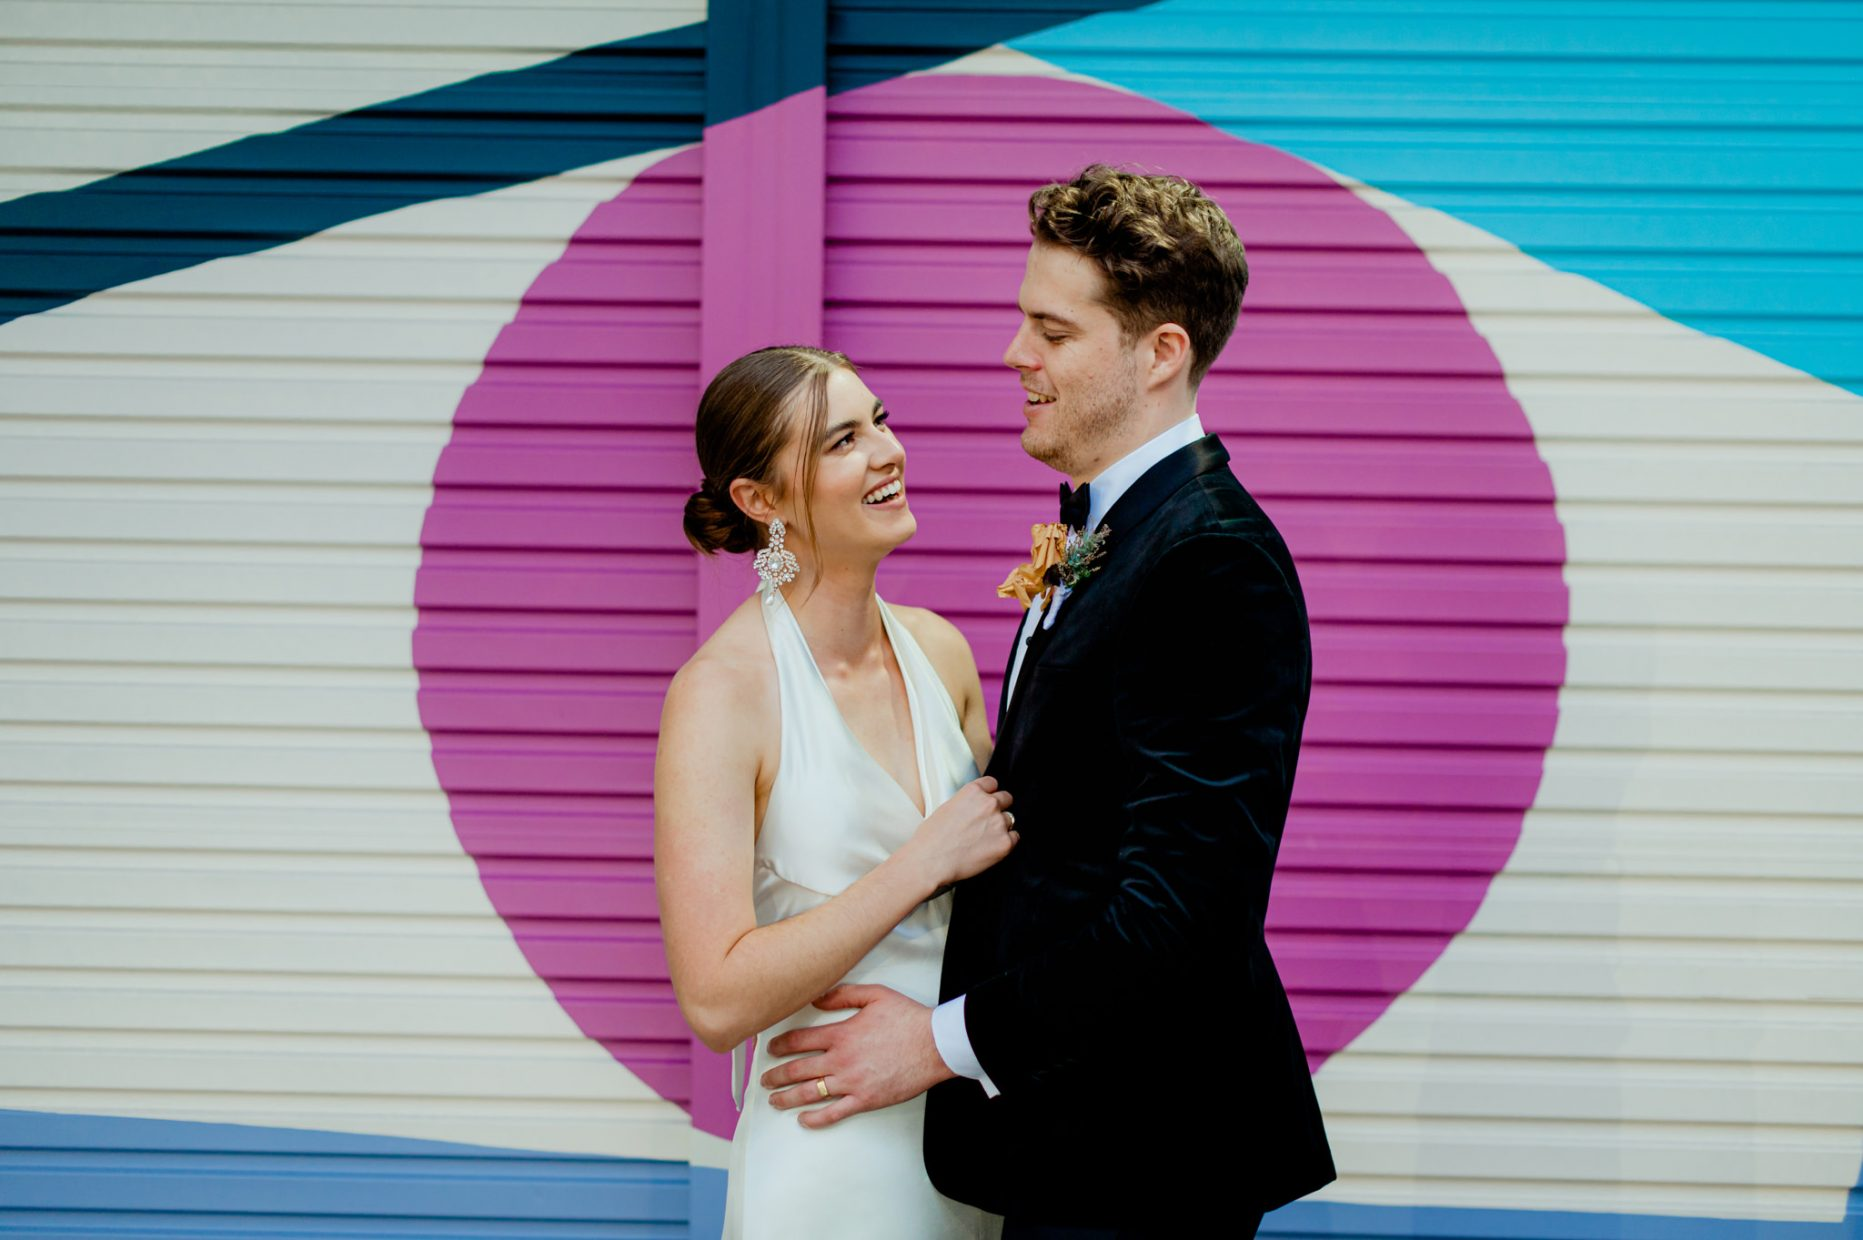 Bride and groom stand in front of colourful garage door with a large purple circle